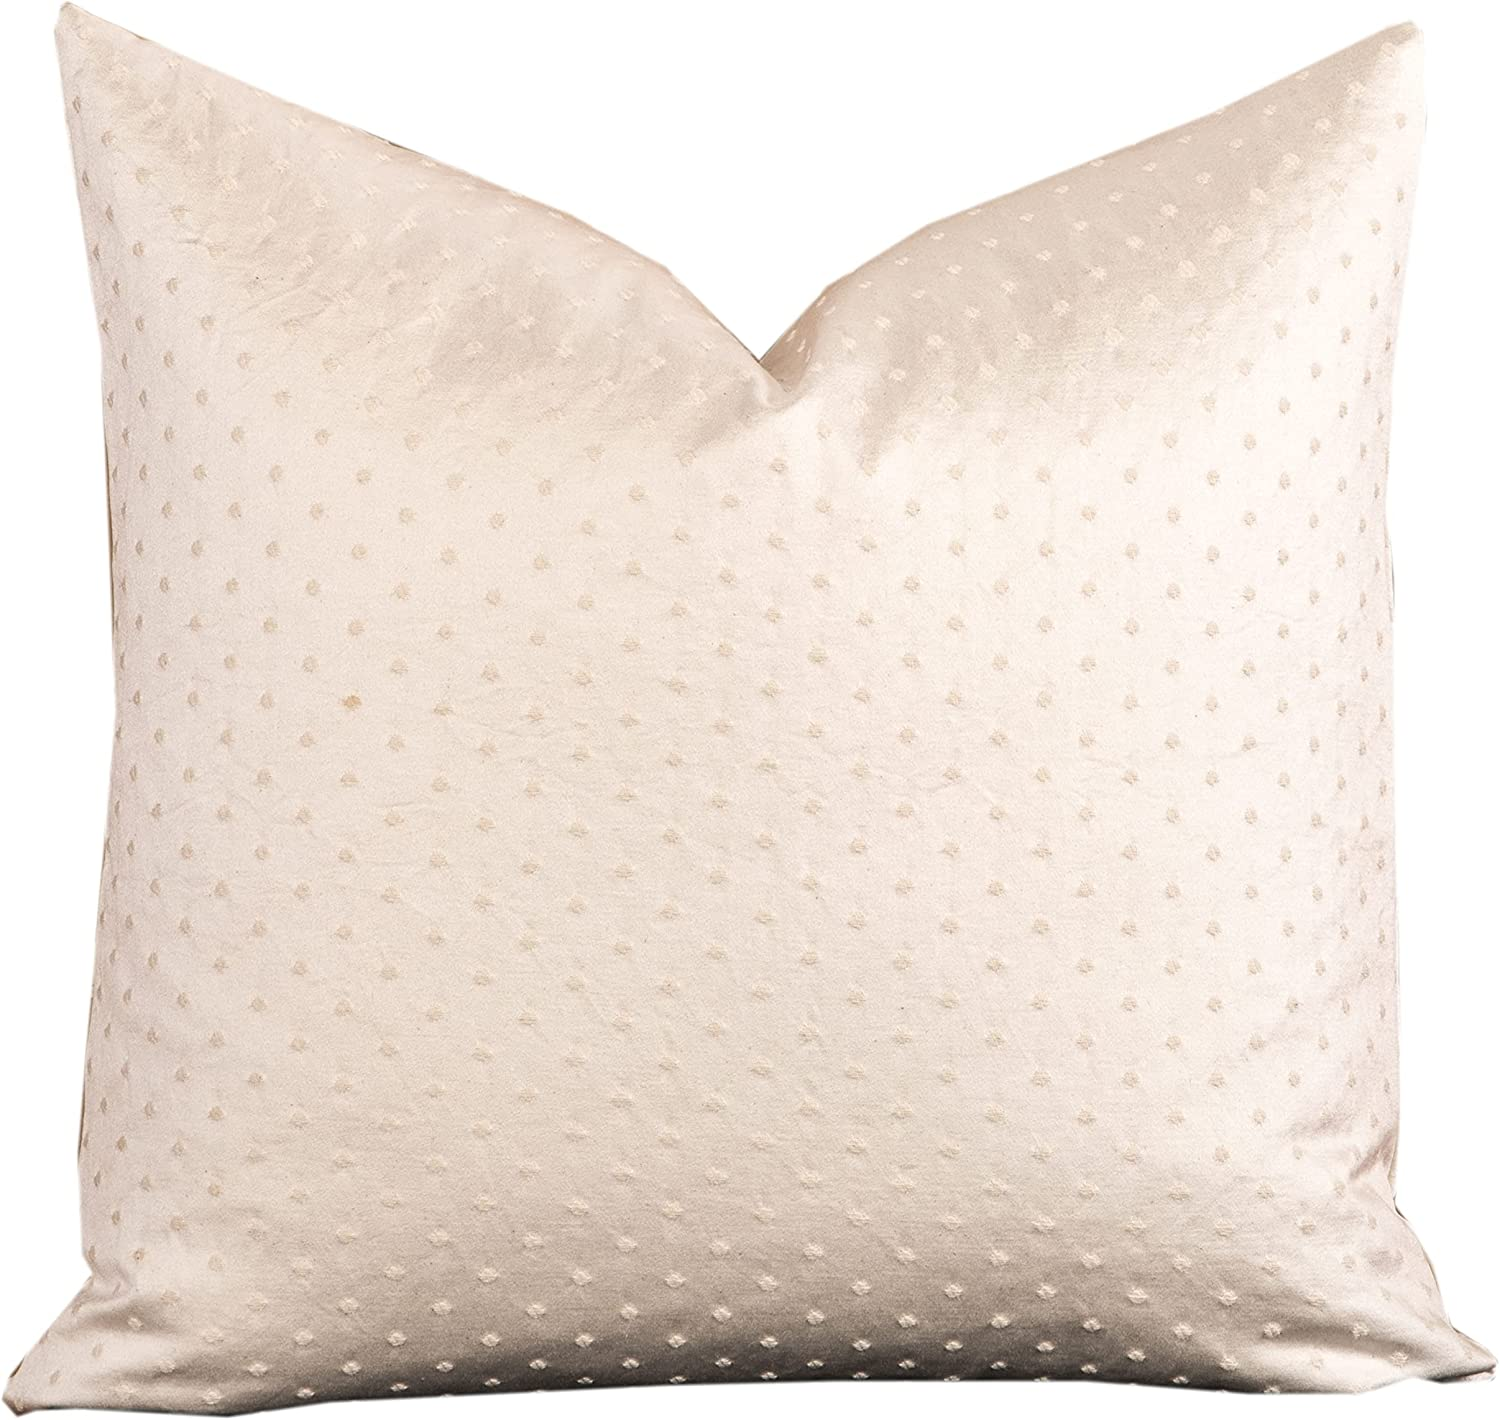 SIScovers Celeste Textured Off-White Toss 16 Max 87% OFF In a popularity Pillow x Medium